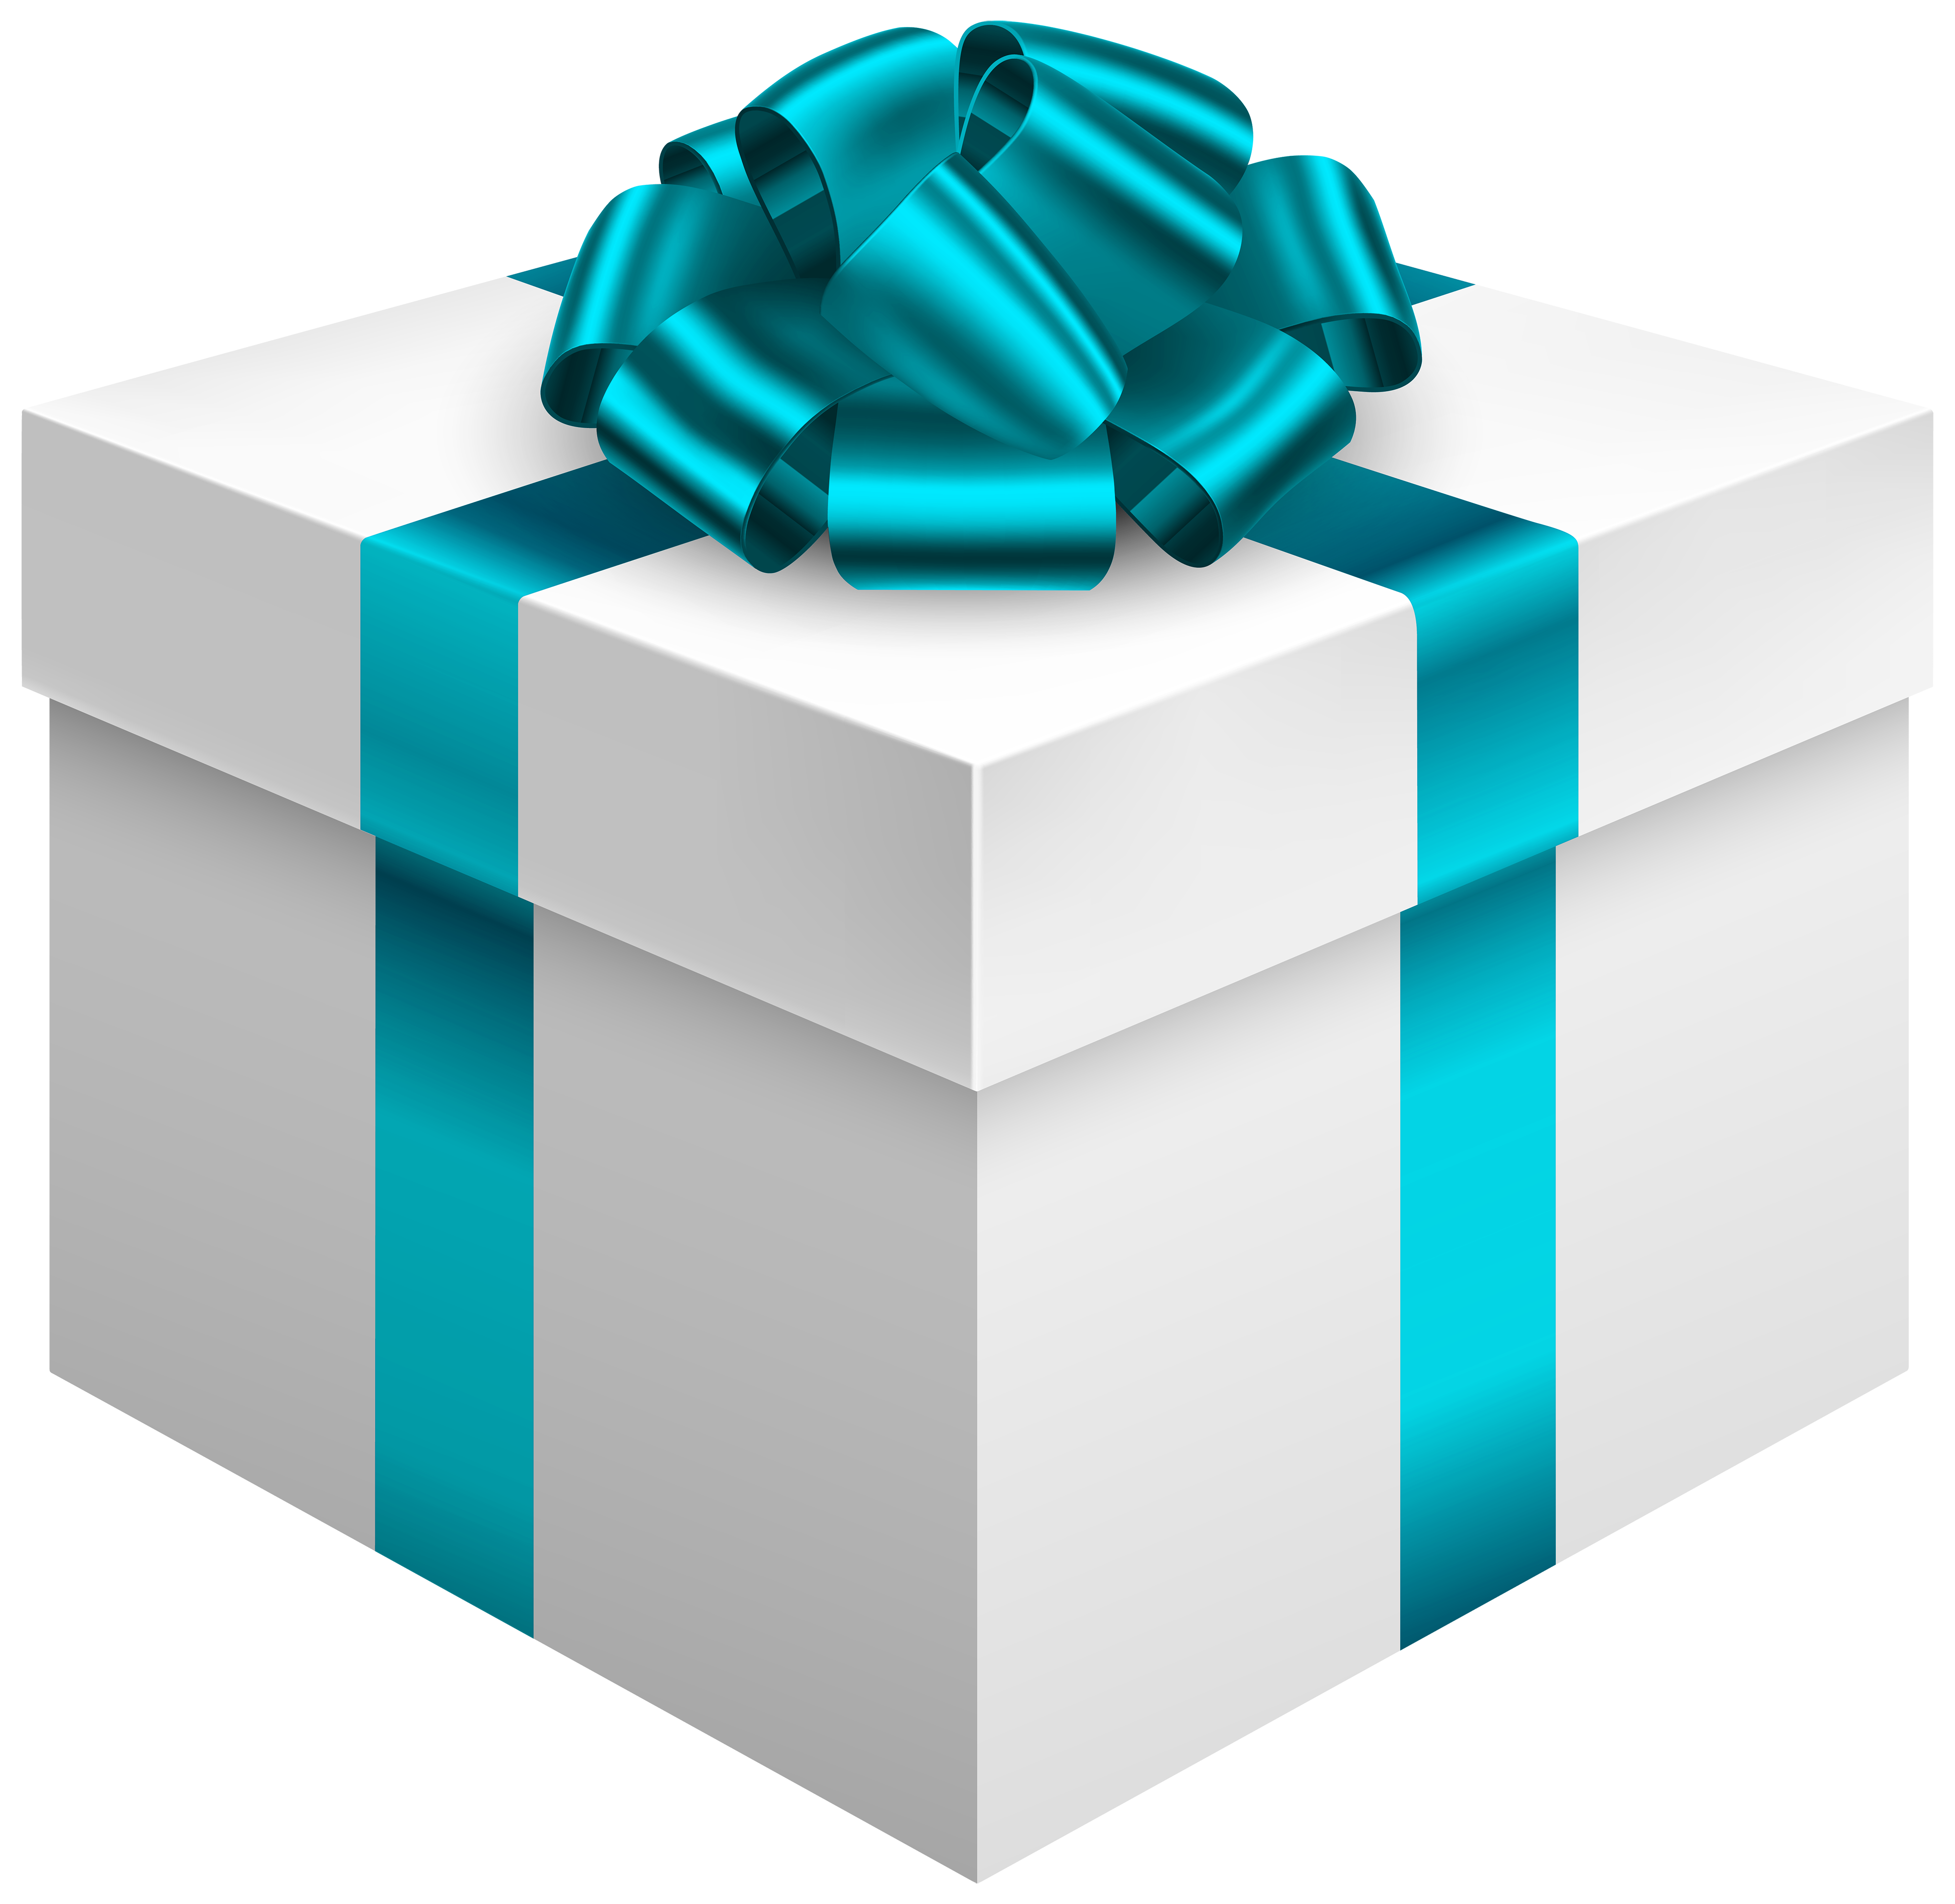 4000x3895 White Gift Box With Blue Bow Png Clipart